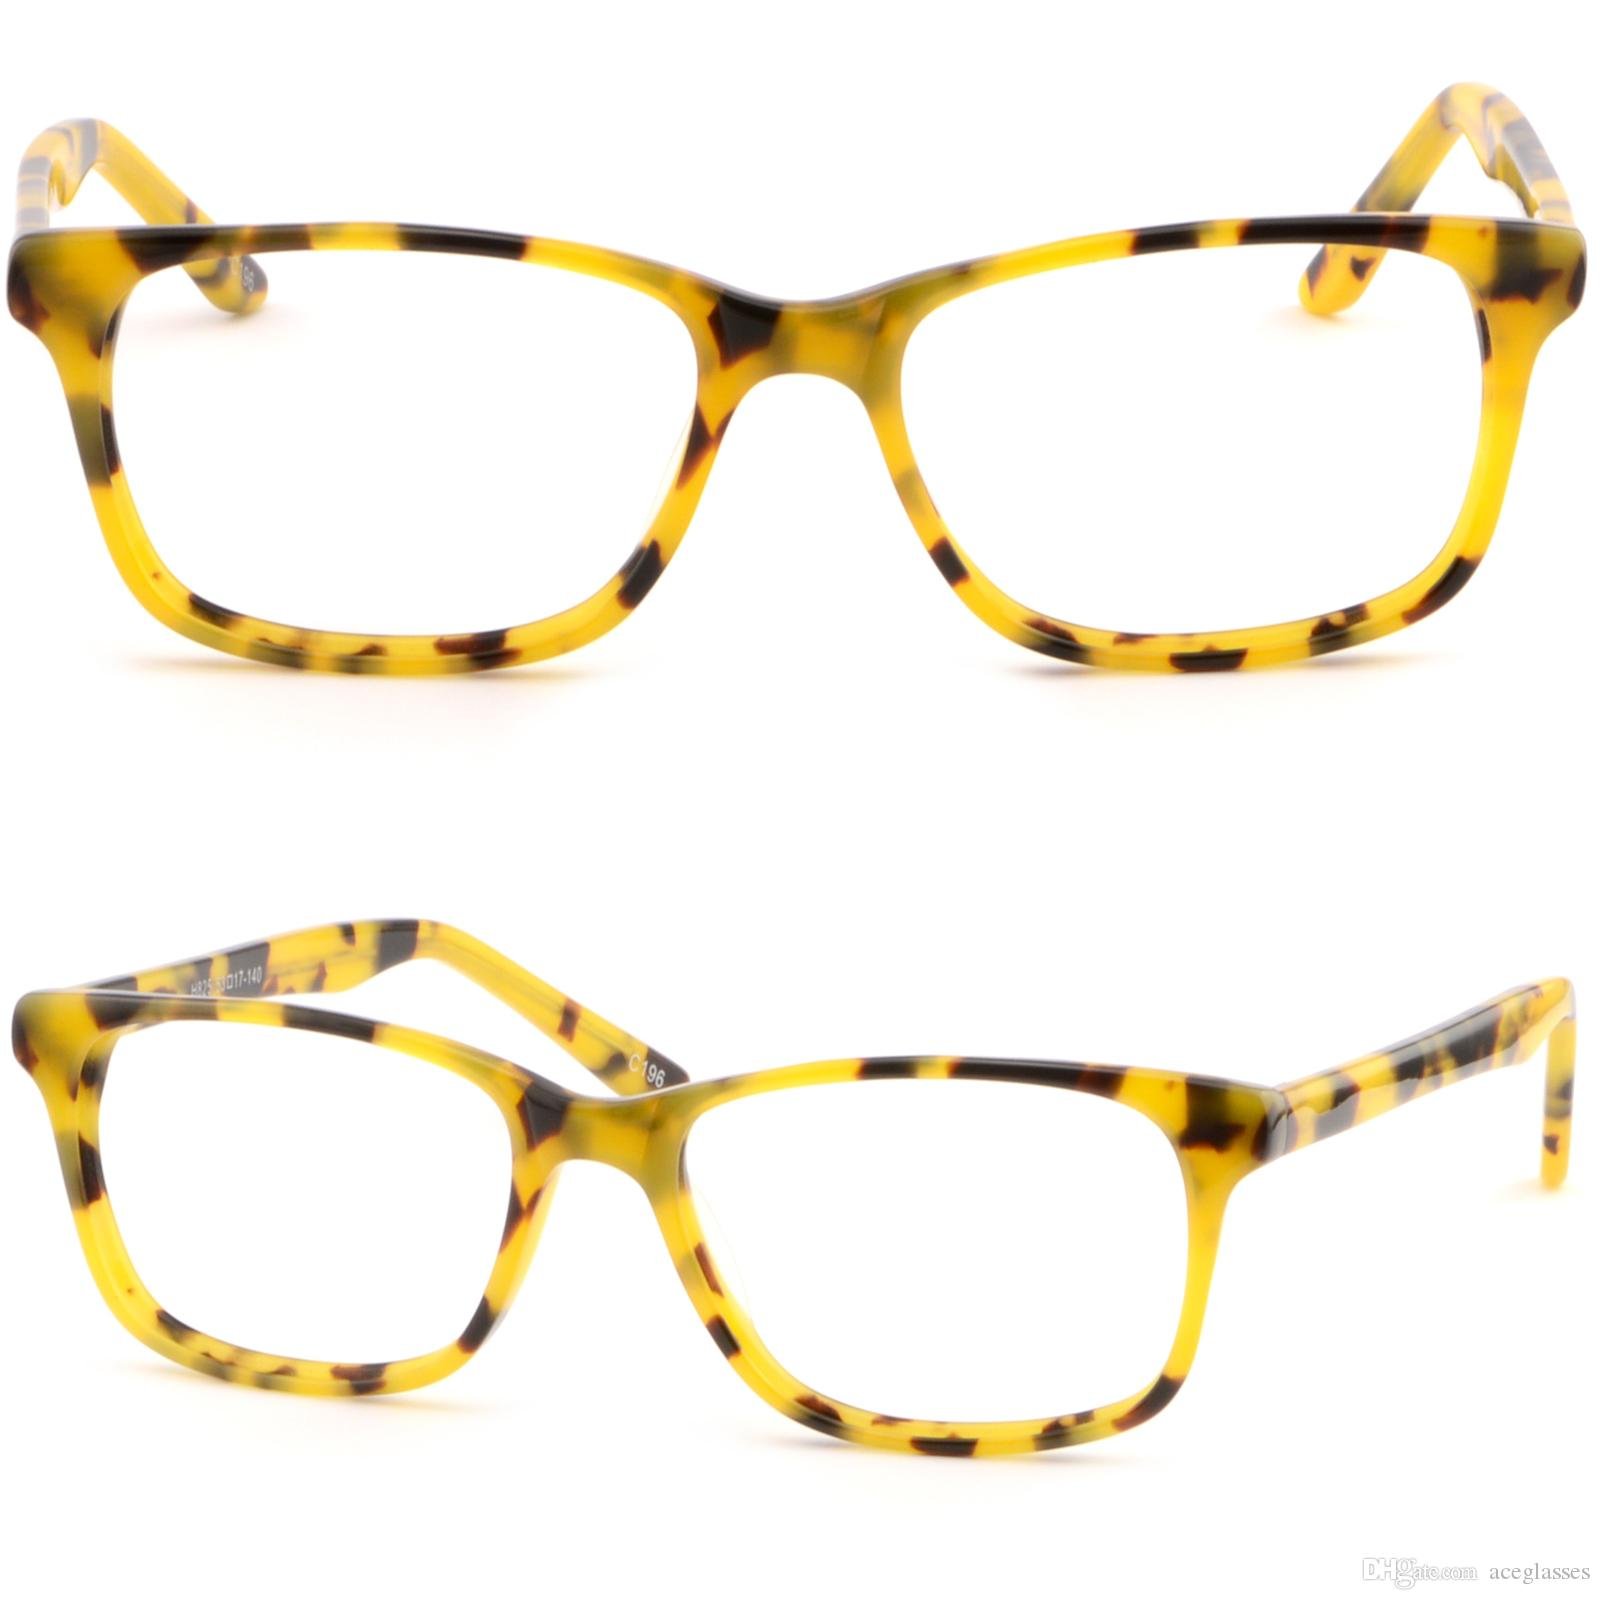 09927436b3 Thin Light Plastic Frame Prescription Glasses RX Sunglasses Tortoiseshell  Yellow Silhouette Eyeglass Frames Vintage Eyeglasses Frames From  Aceglasses